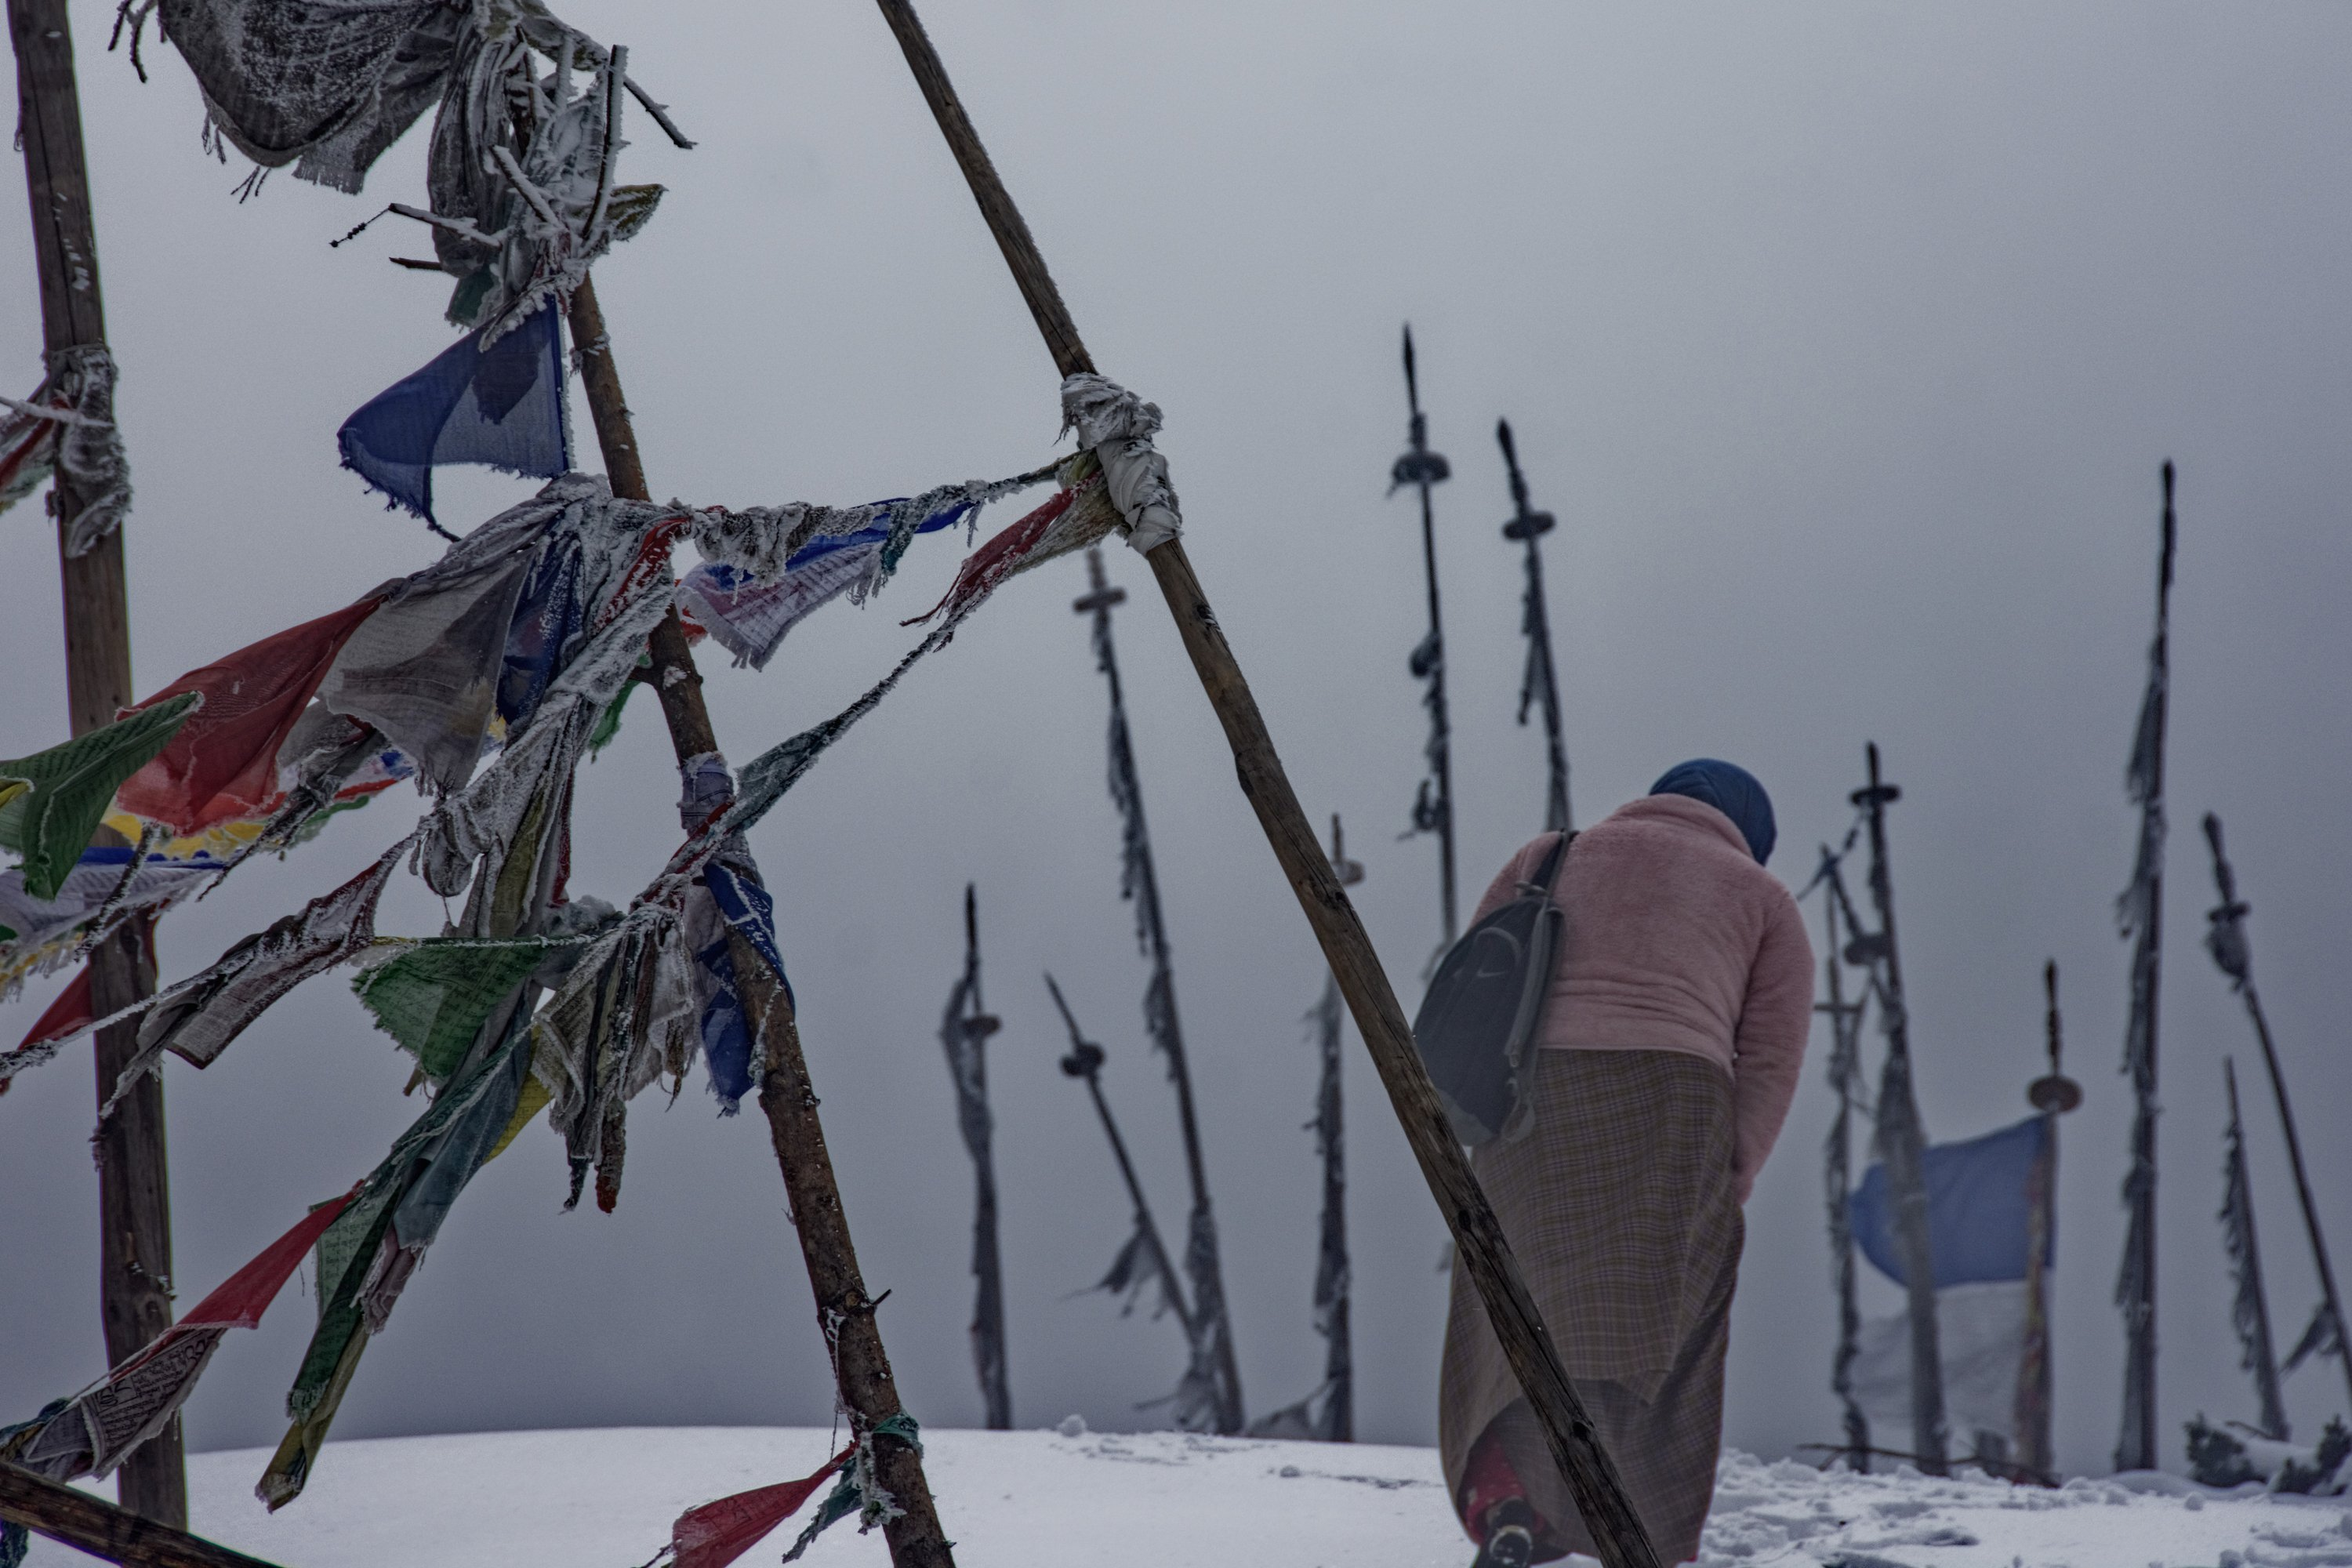 Snowy mountains and prayer flags in Bhutan